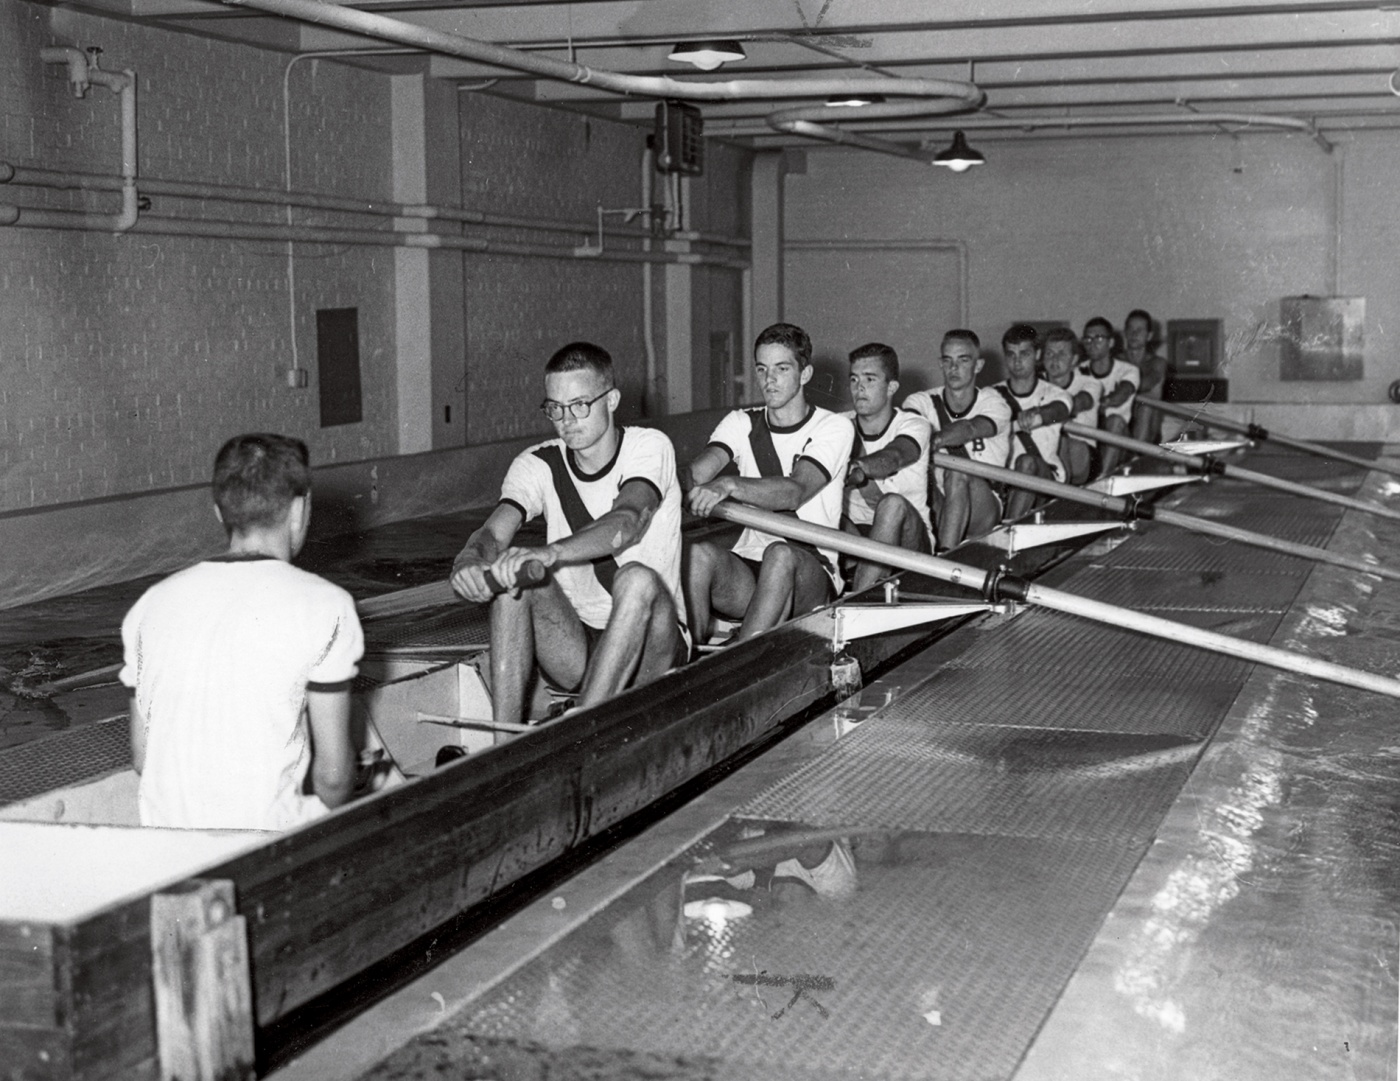 1960 crew training indoors